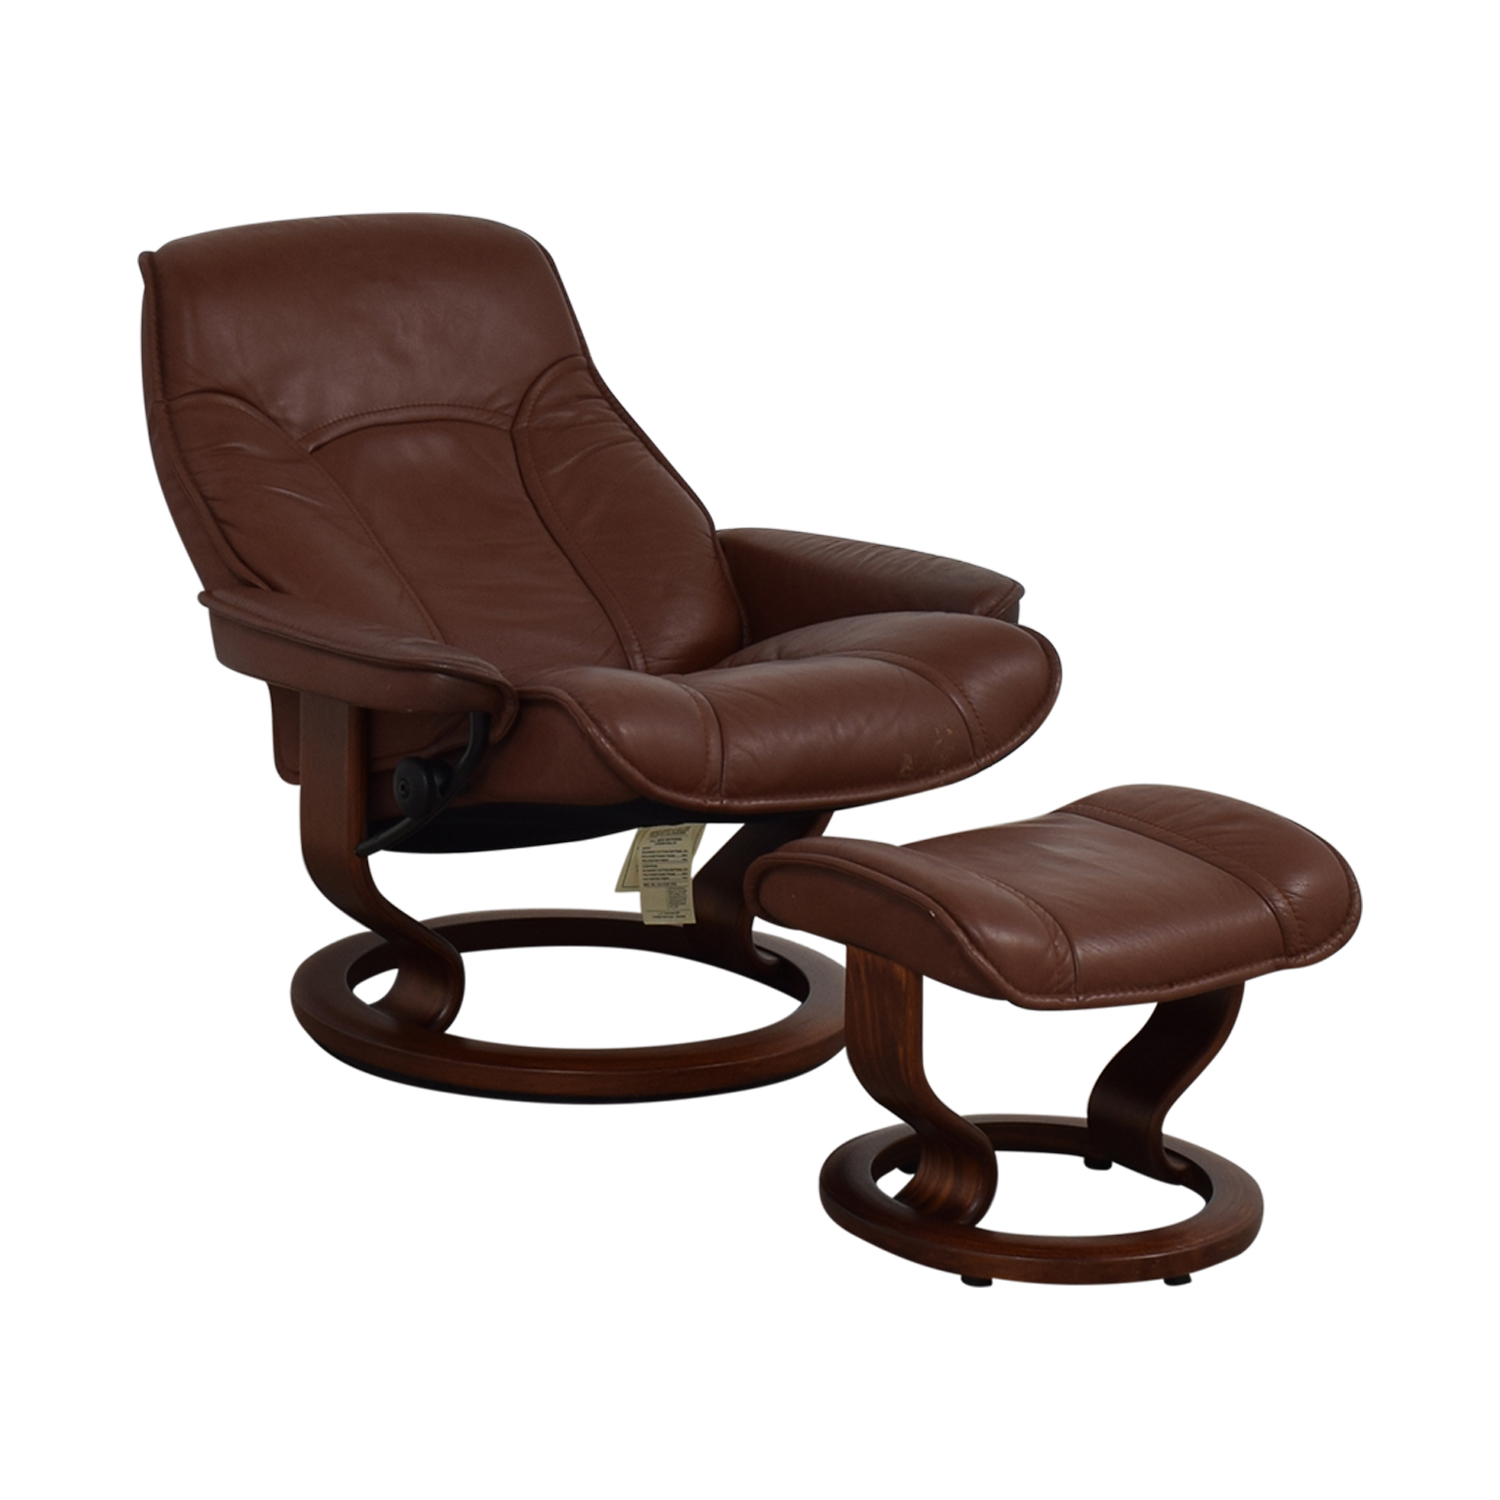 Brown Swivel Chair with Ottoman coupon